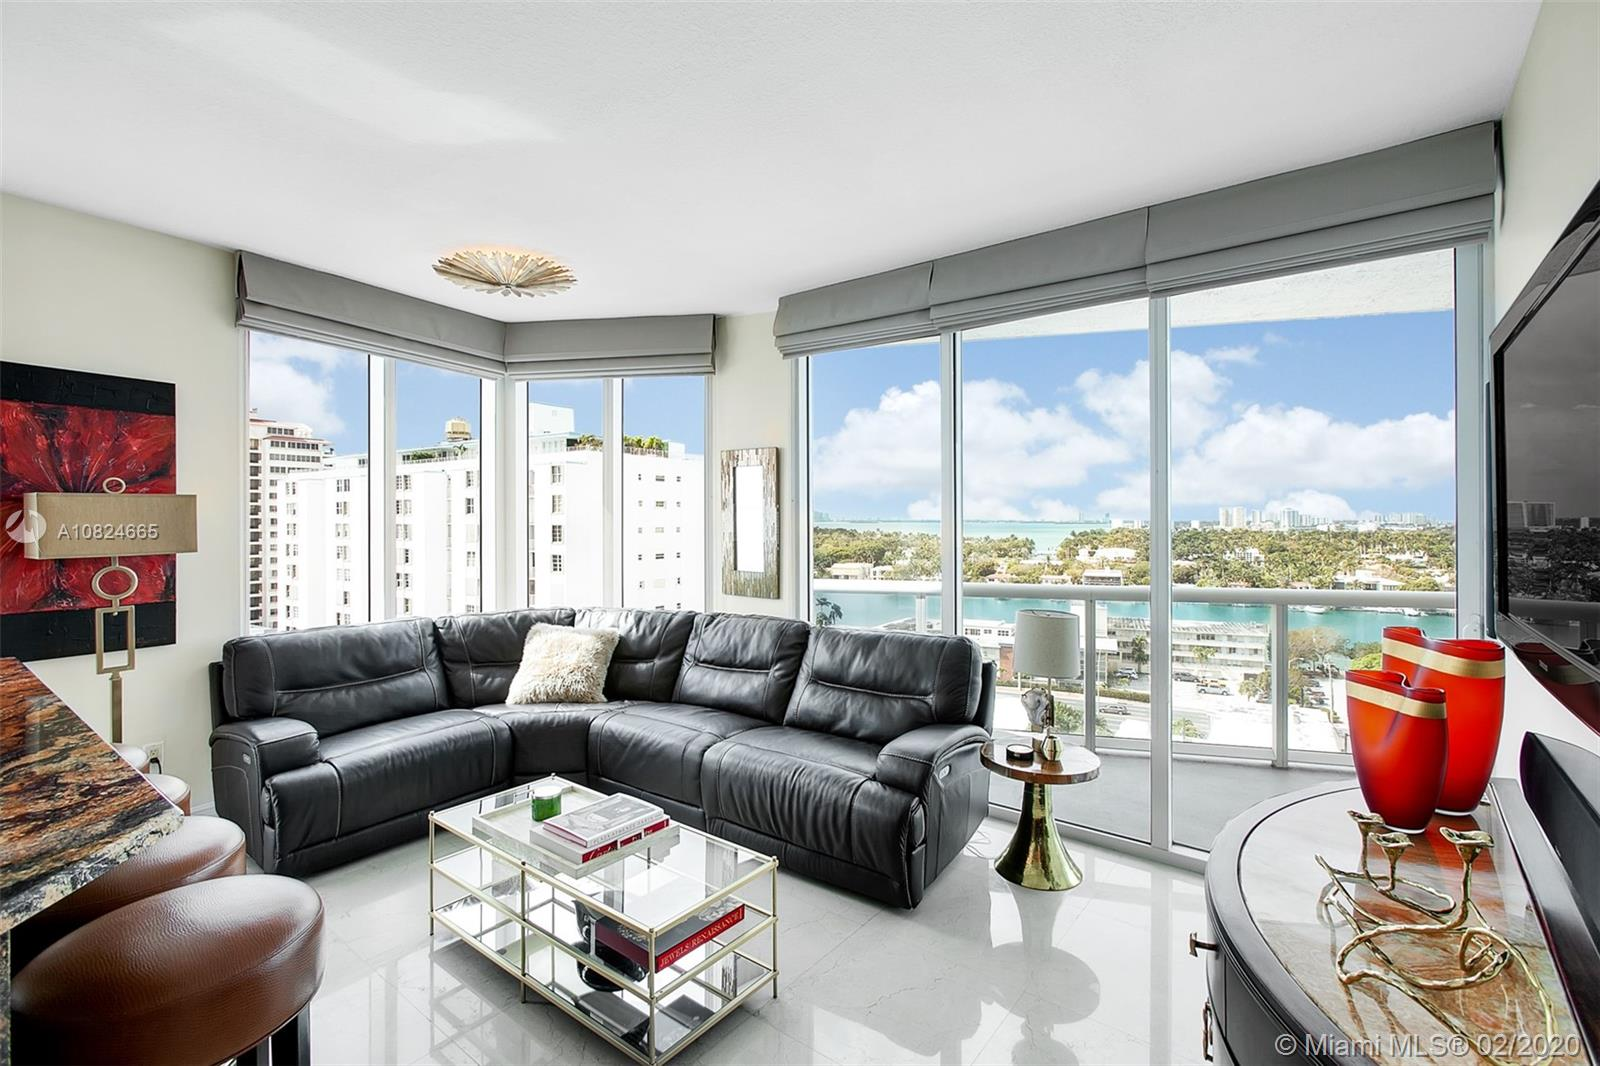 Photo of Bel-Aire on the Ocean Apt 1208 that clicks through to the property detail page